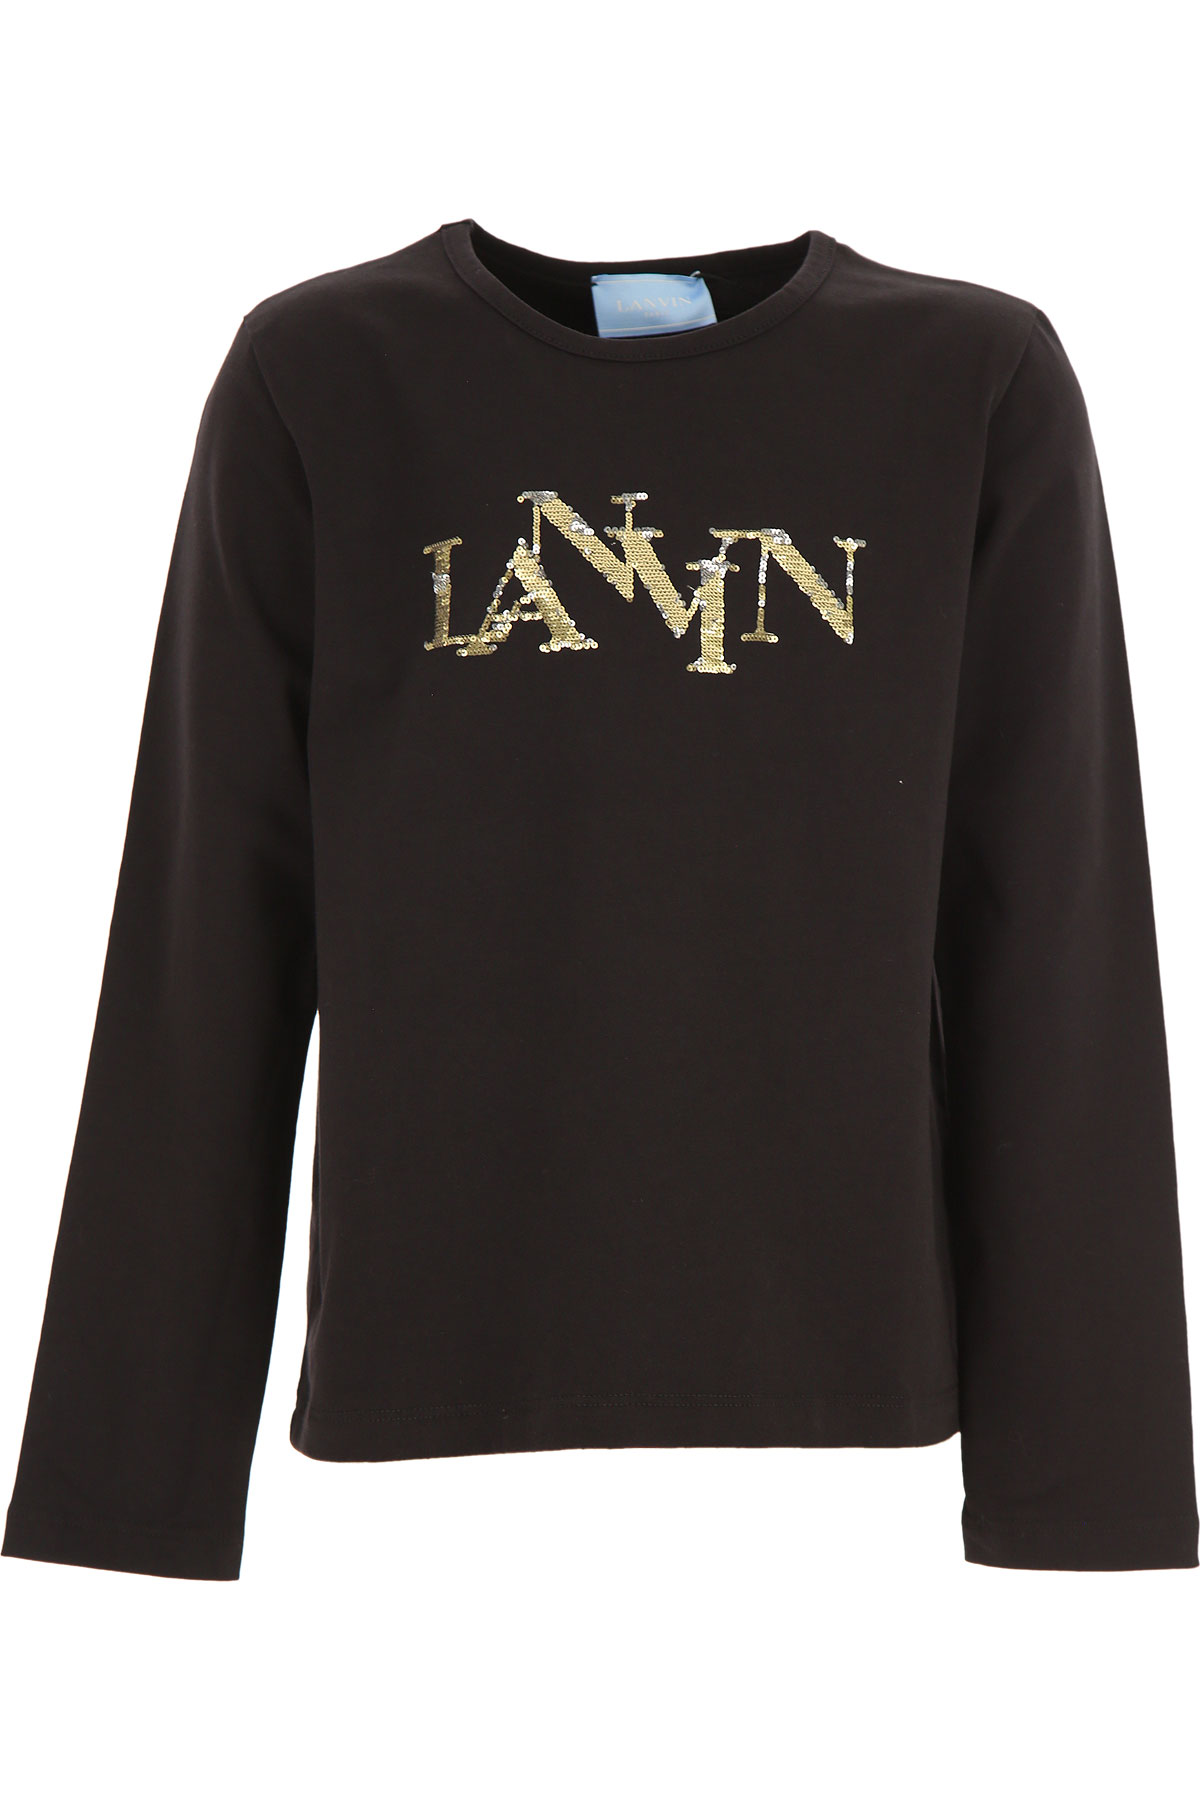 Lanvin Kids T-Shirt for Girls On Sale, Black, Cotton, 2019, 10Y 12Y 14Y 8Y